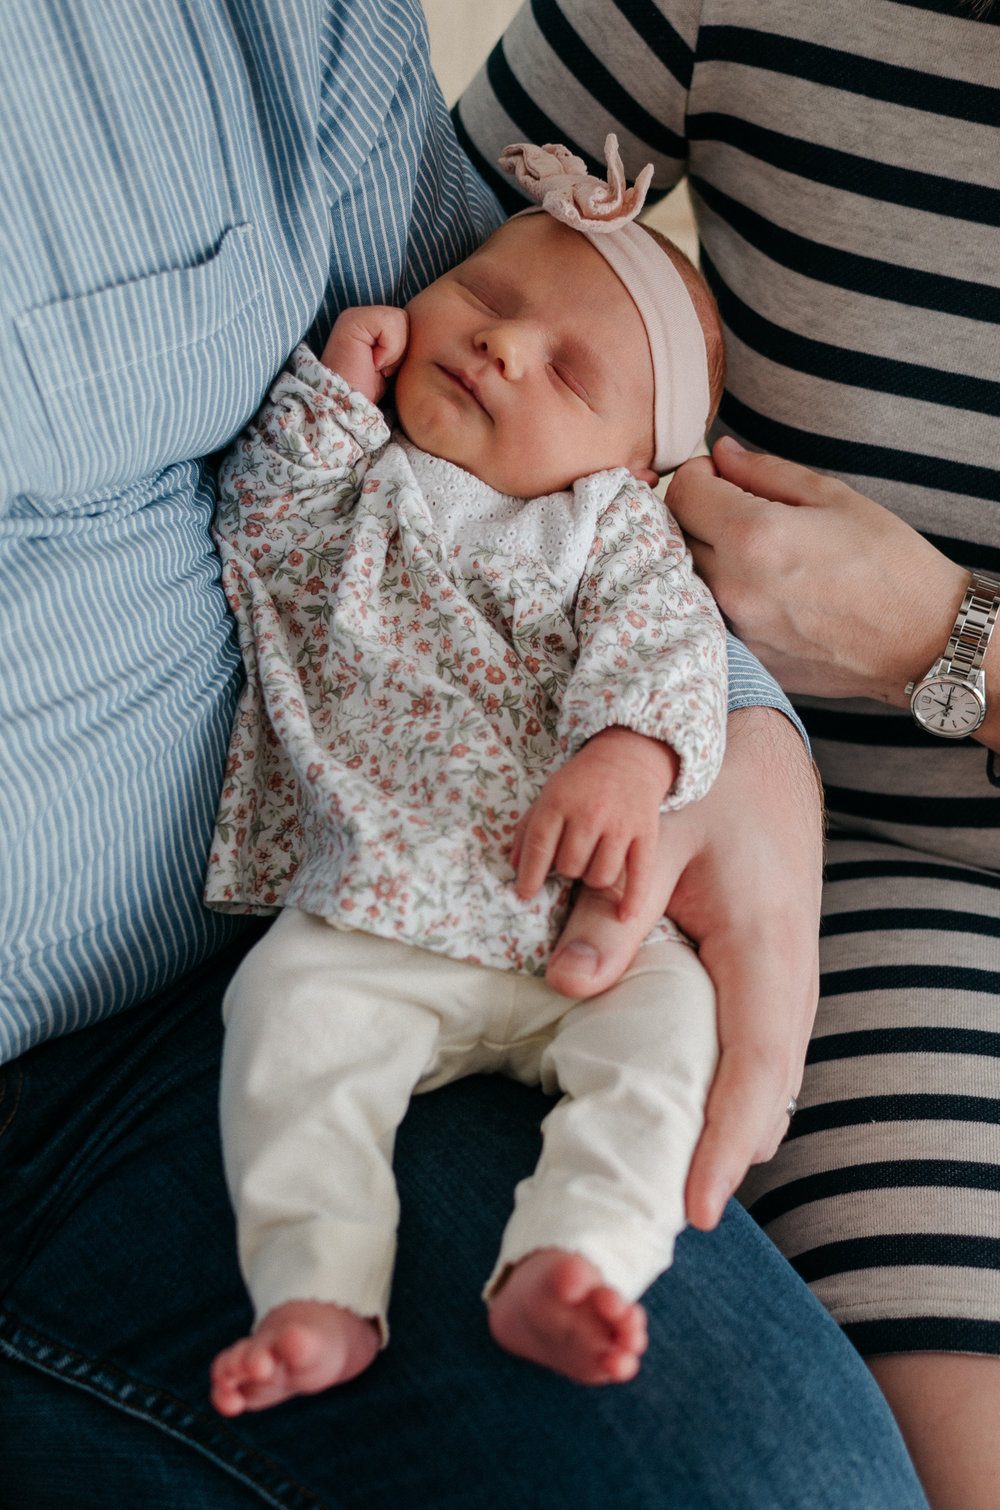 Vicky_McLachlan_Photography_Family_Newborn_Lifestyle_Photographer-4-3.jpg